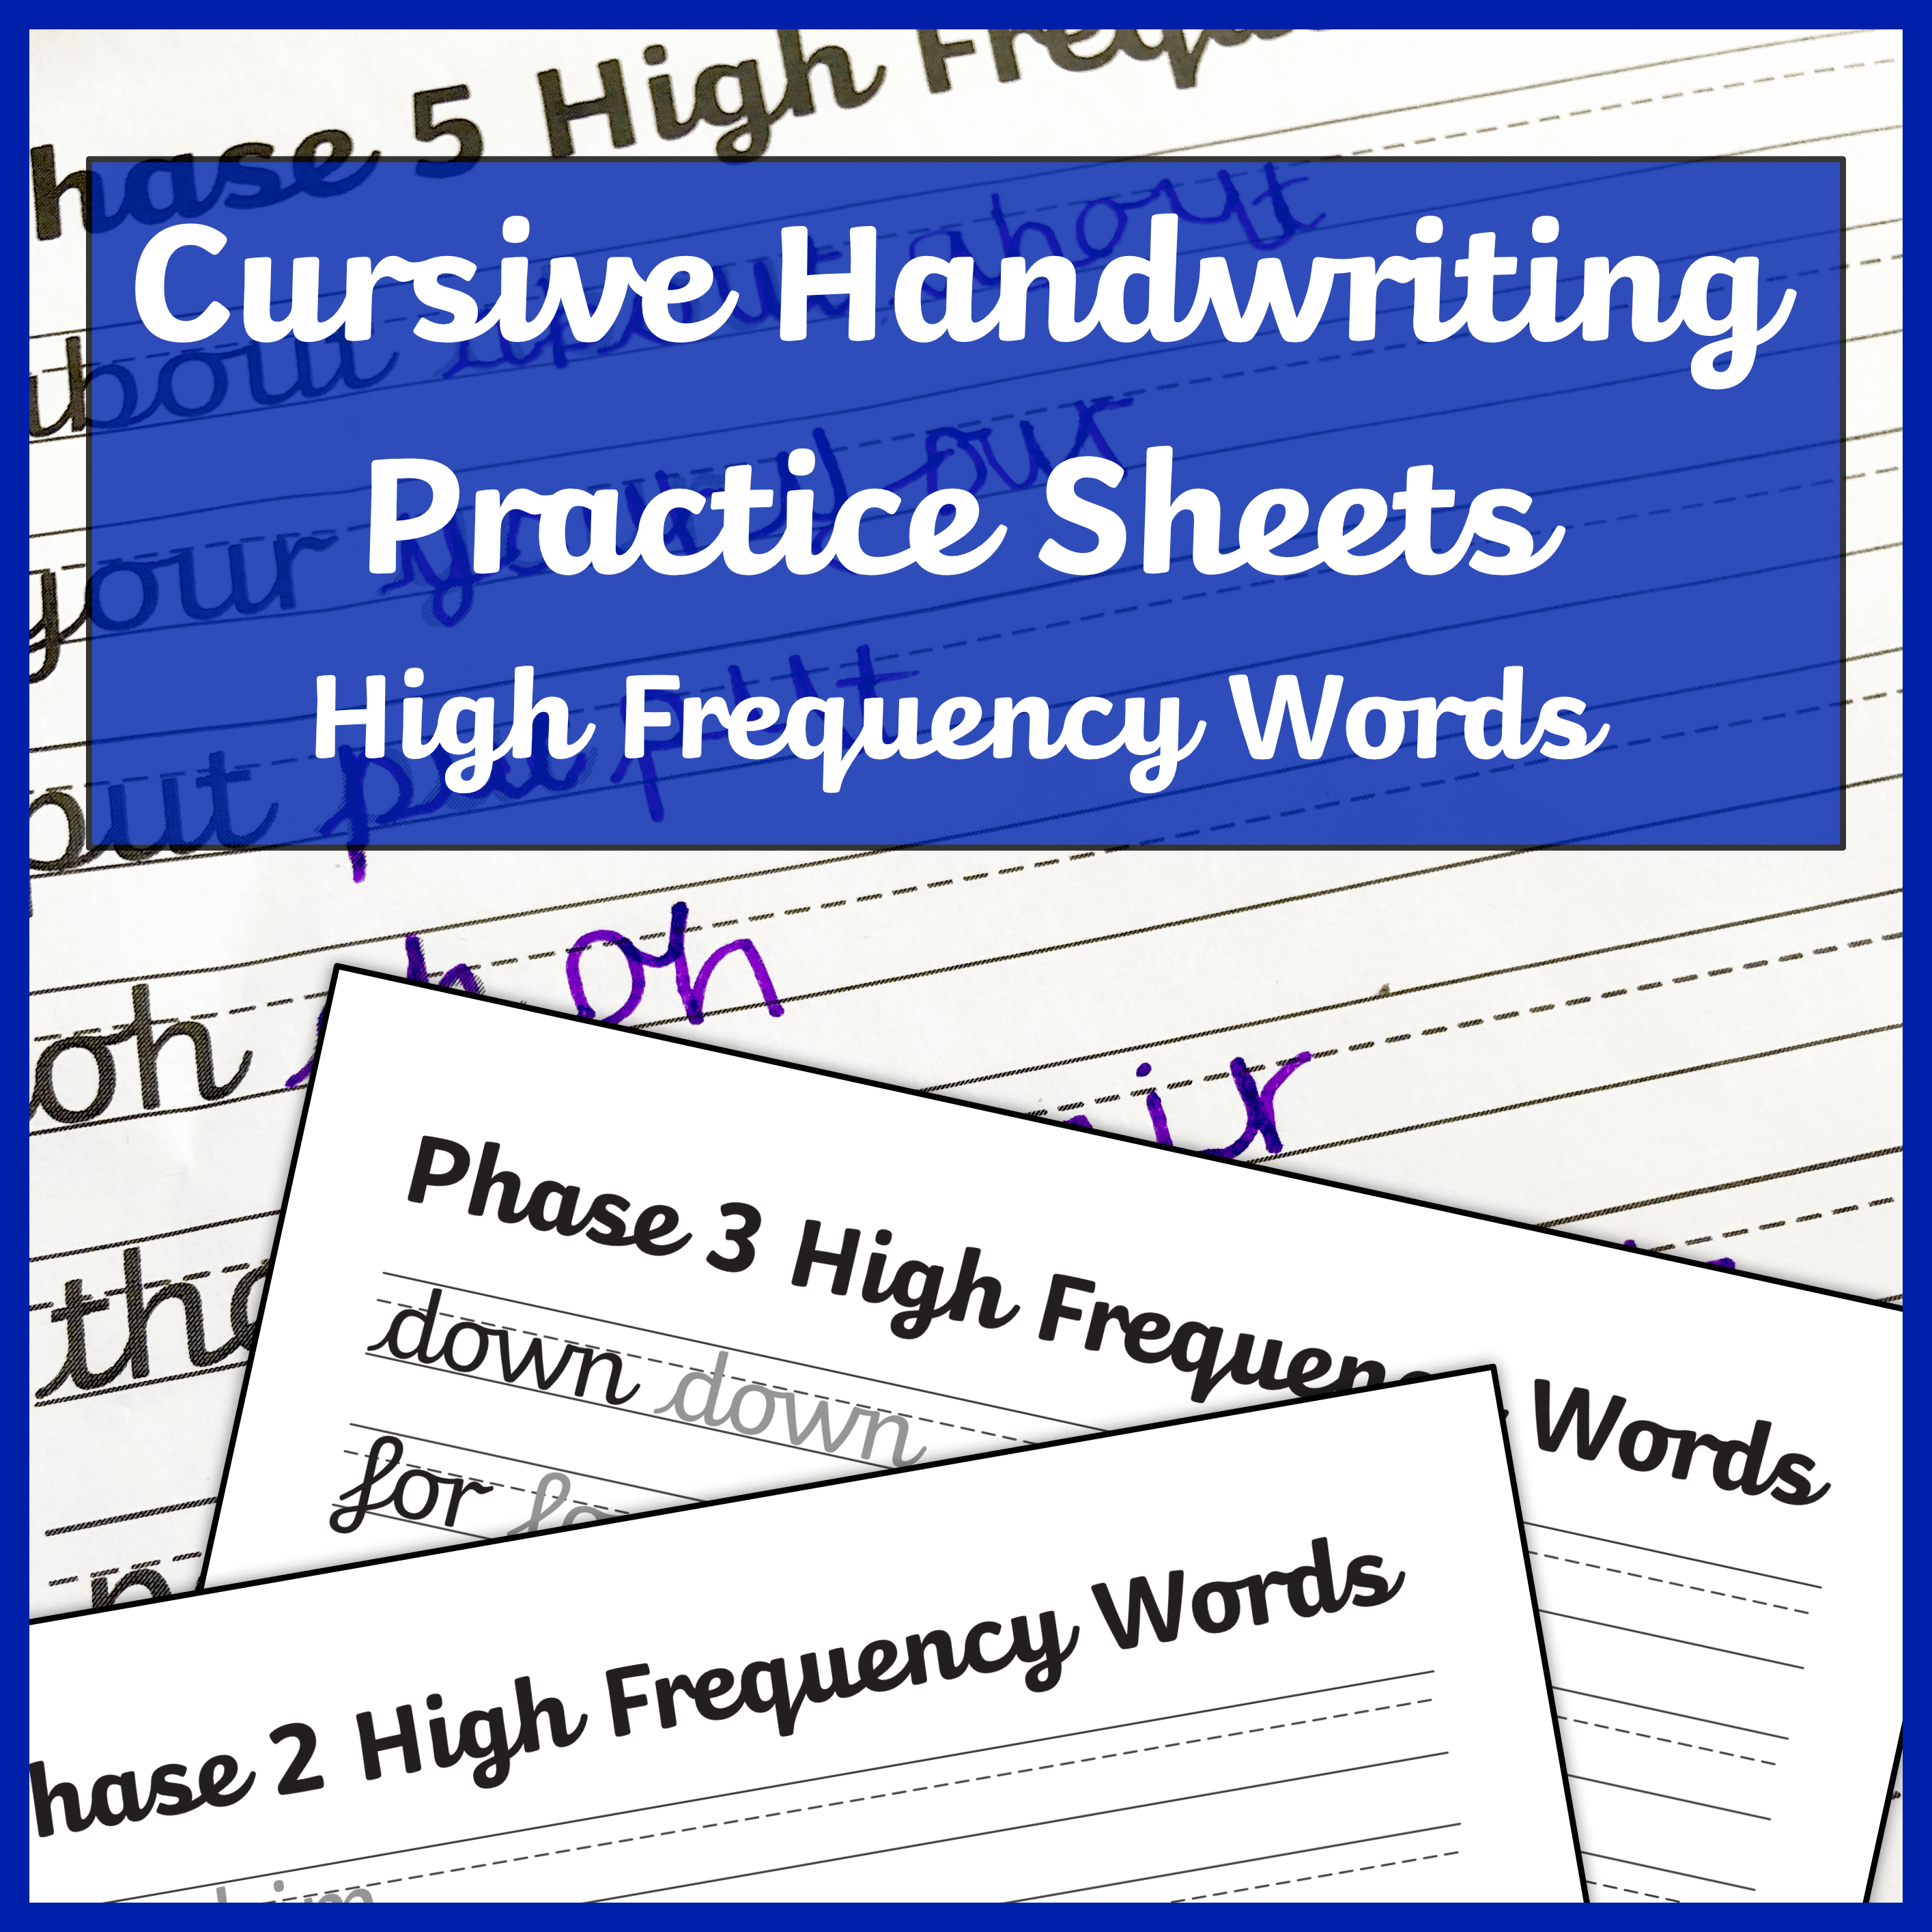 Cursive Handwriting Worksheets High Frequency Words